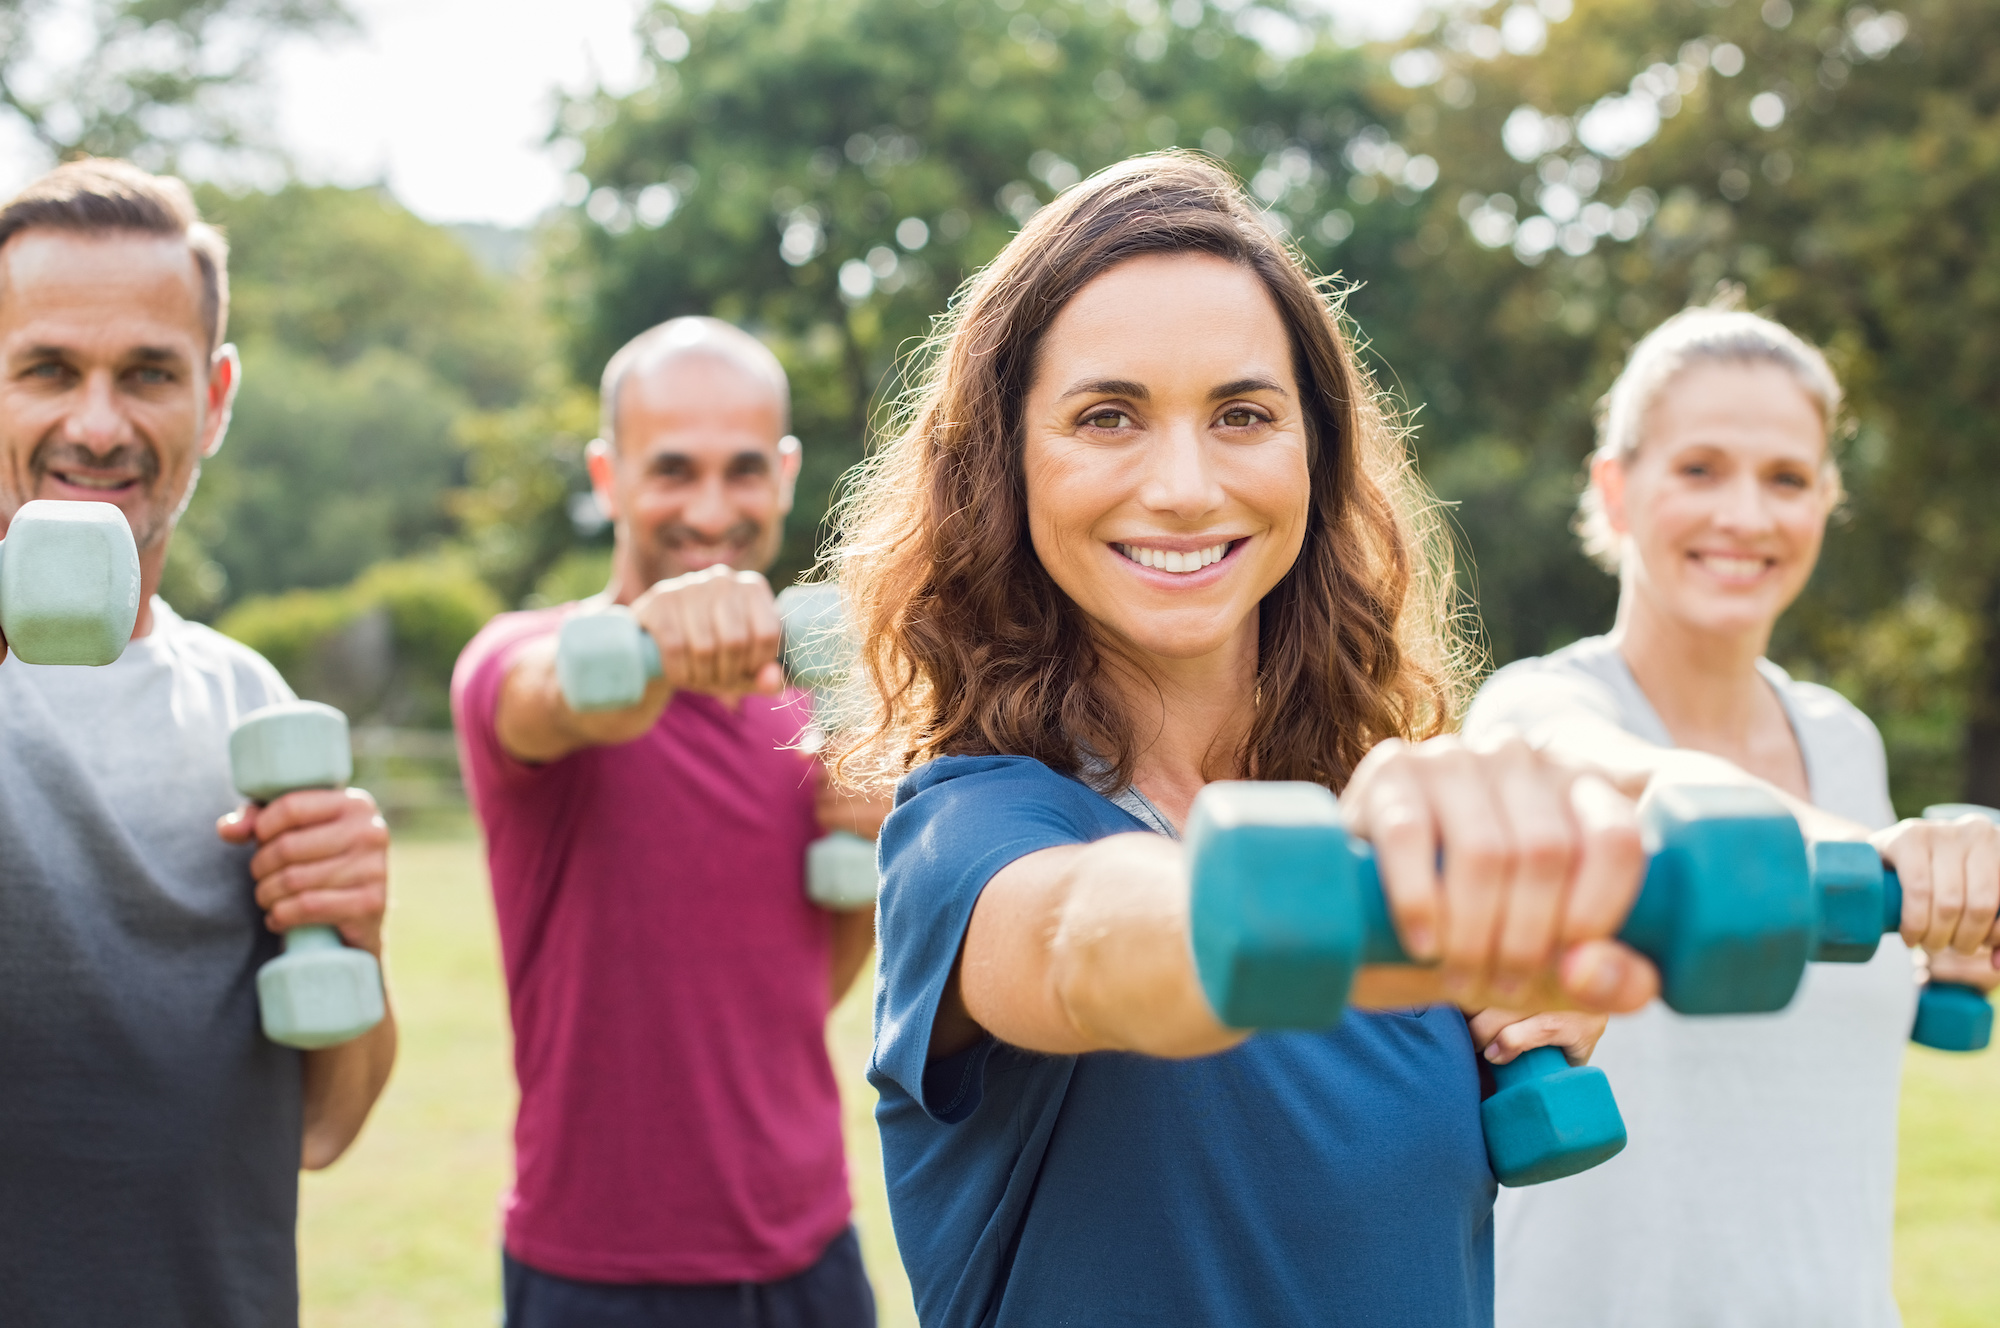 employer wellness services - Mature people in training session of aerobics using dumbbells at park